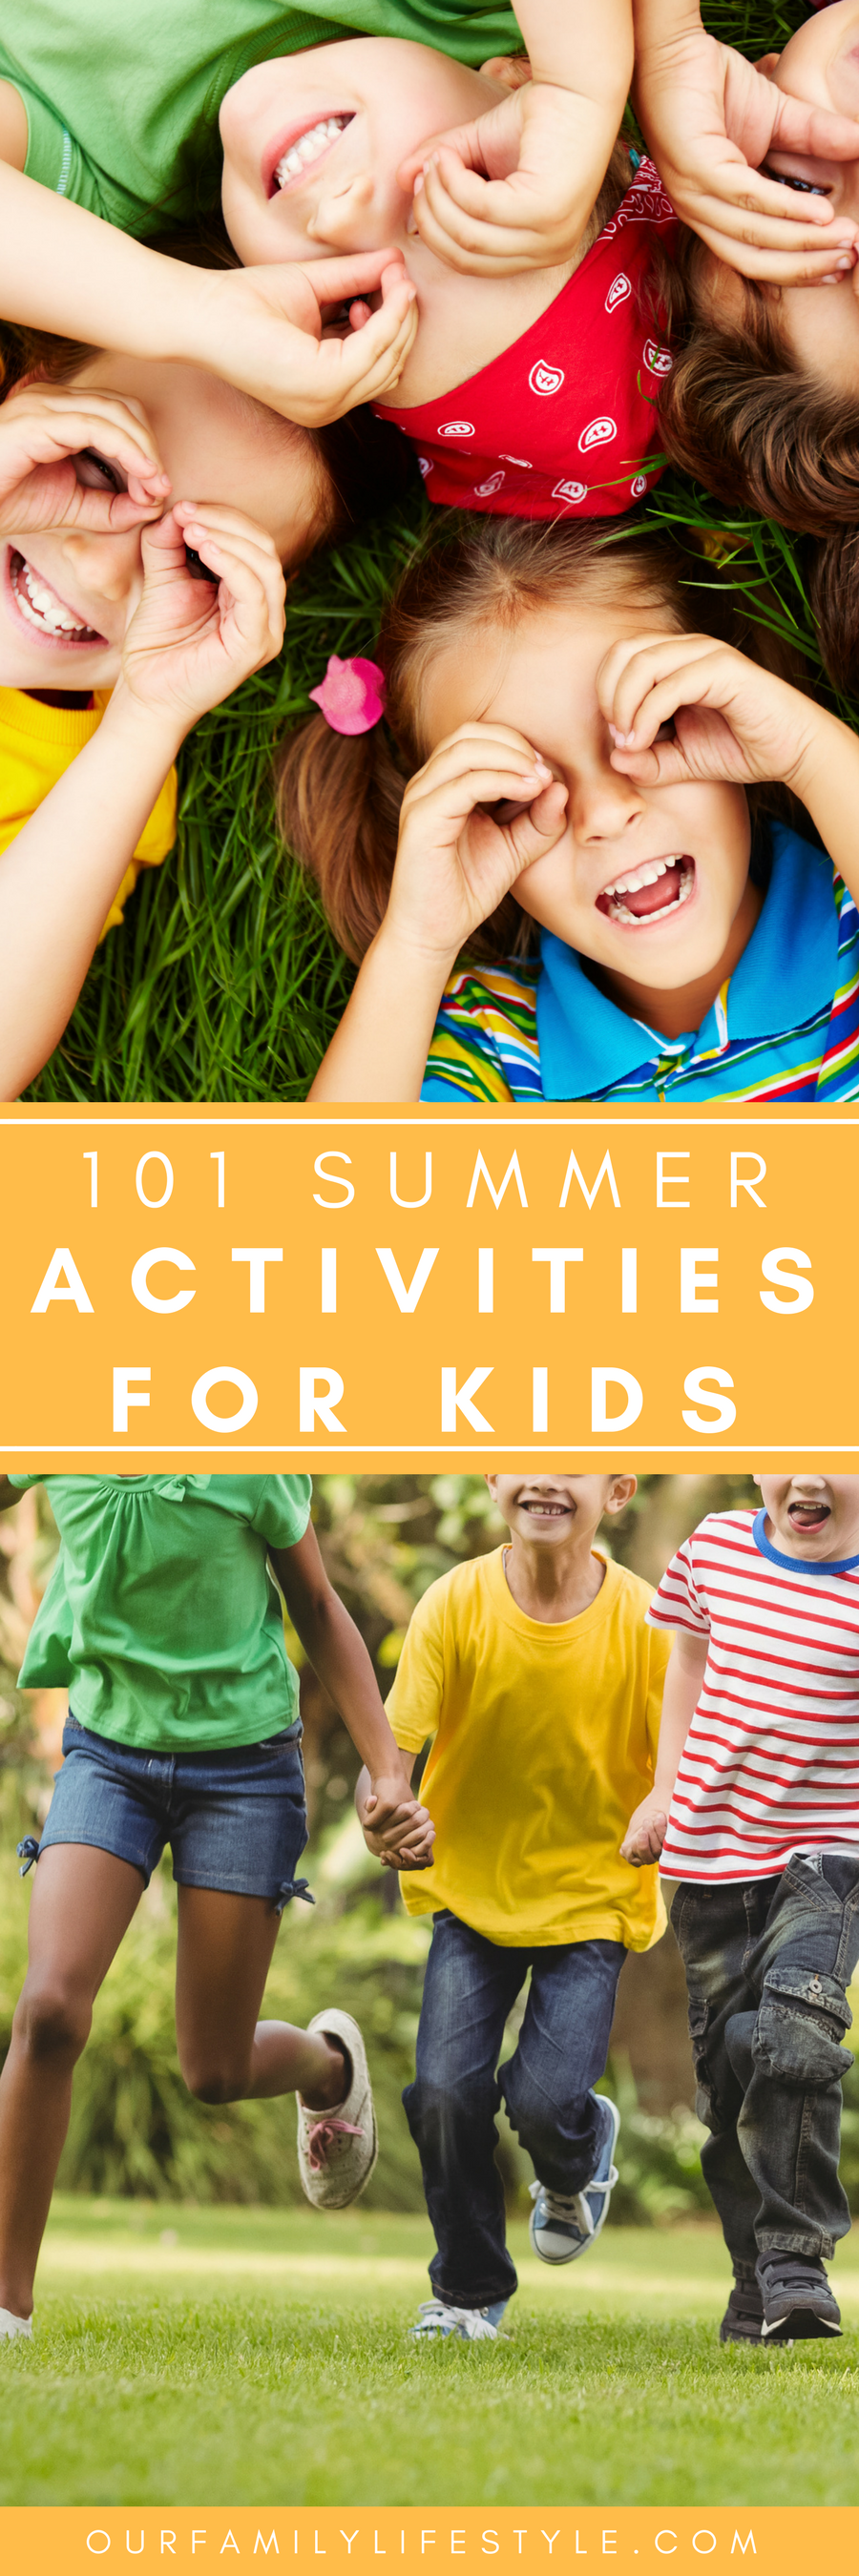 Most of these 101 summer activities for kids are budget-friendly and require nothing more than a little creativity for several days of fun games to play.